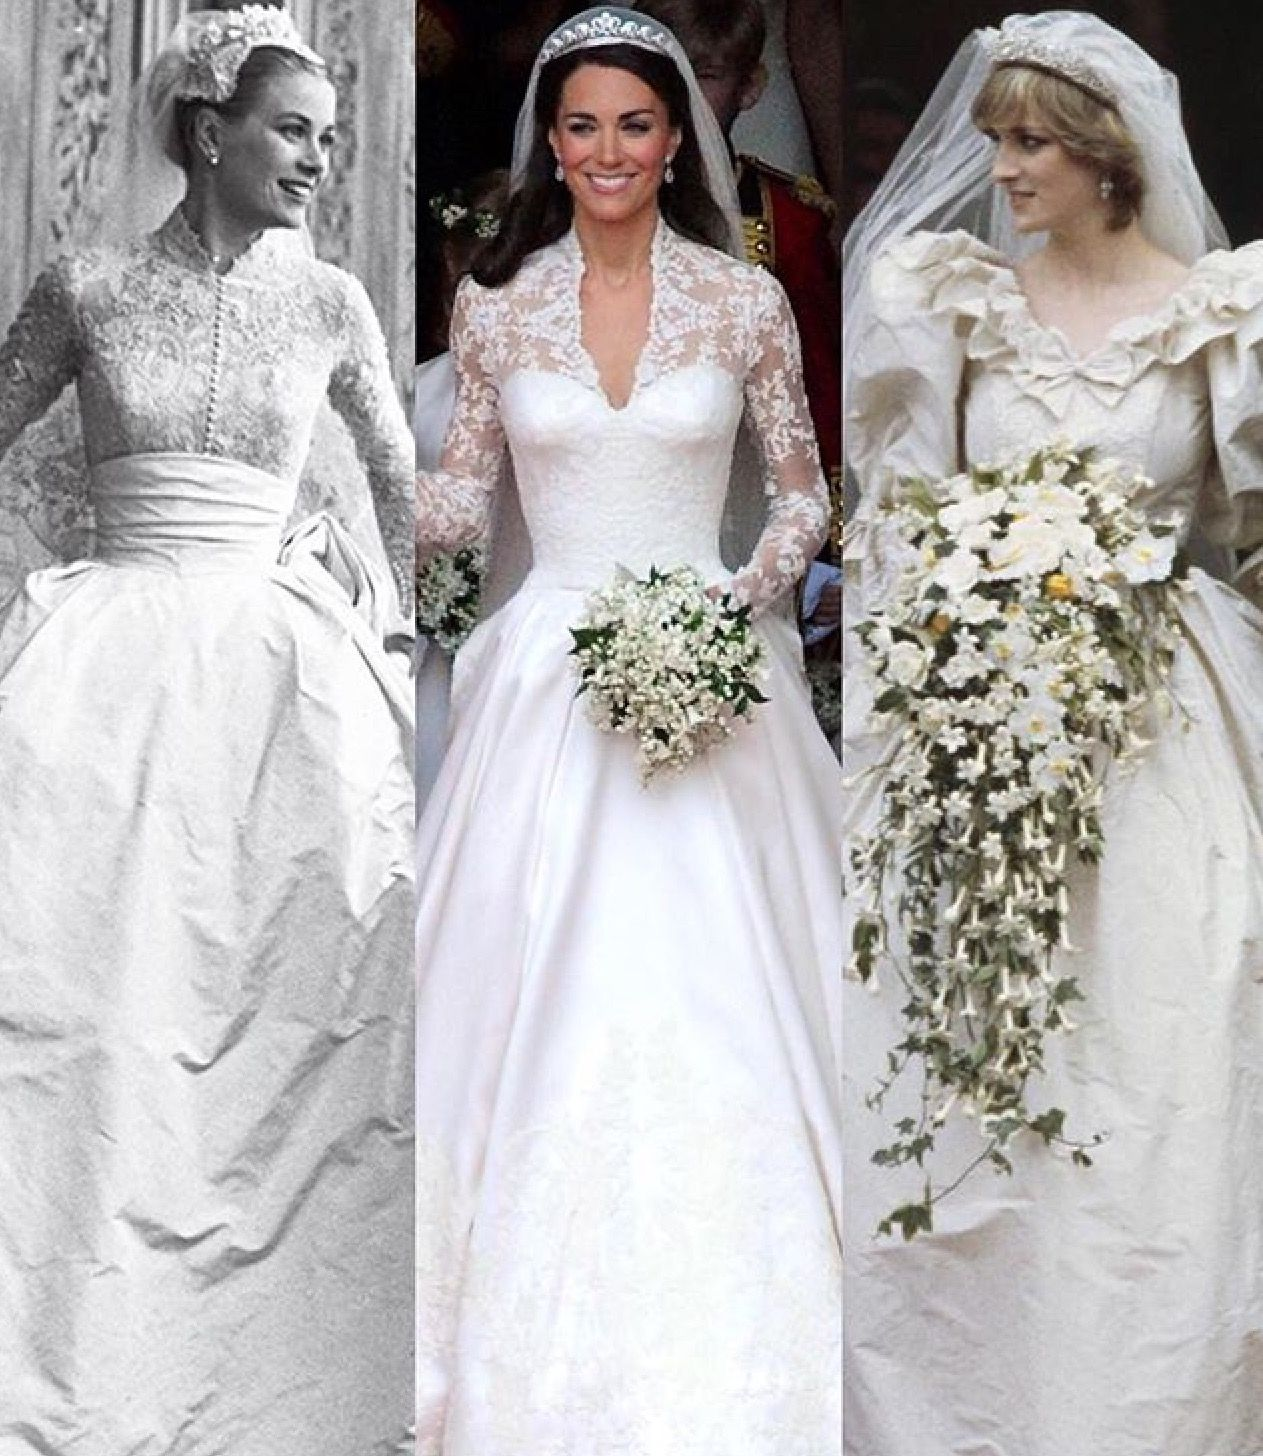 Past Royal Wedding dresses... What will Meghan Markle wear